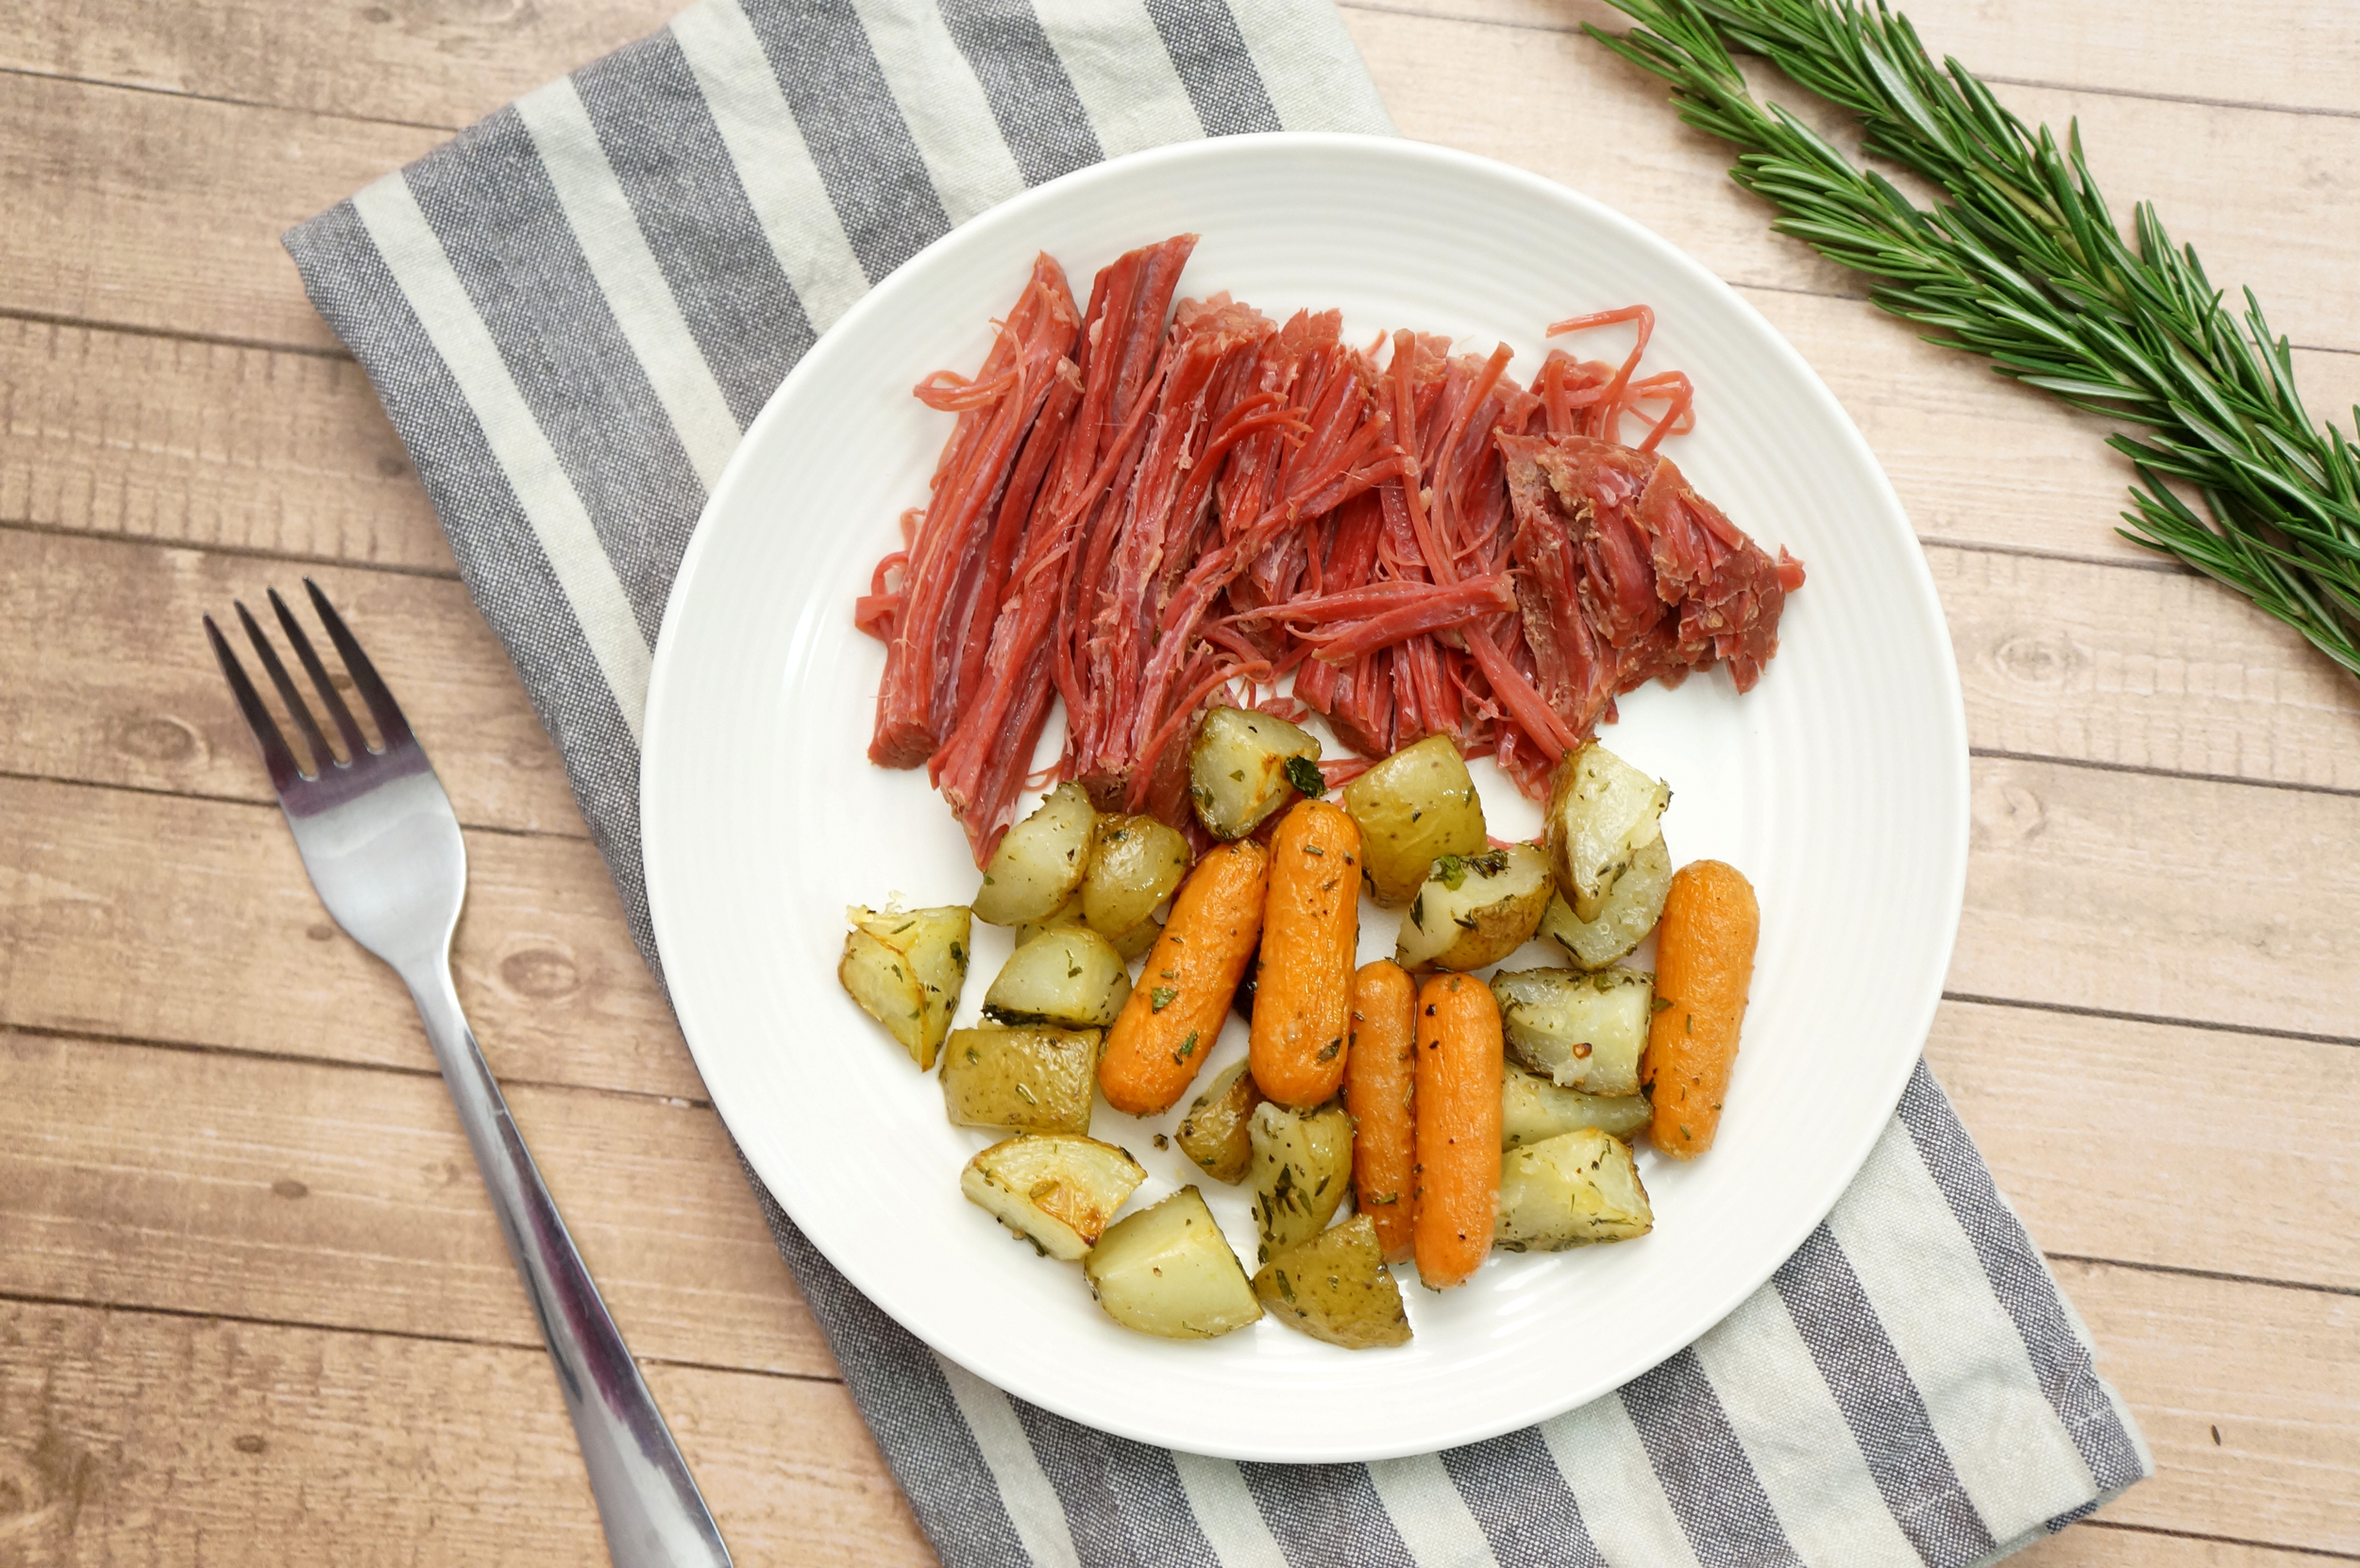 thegirlcaneat-corned-beef-potatoes-carrots-1